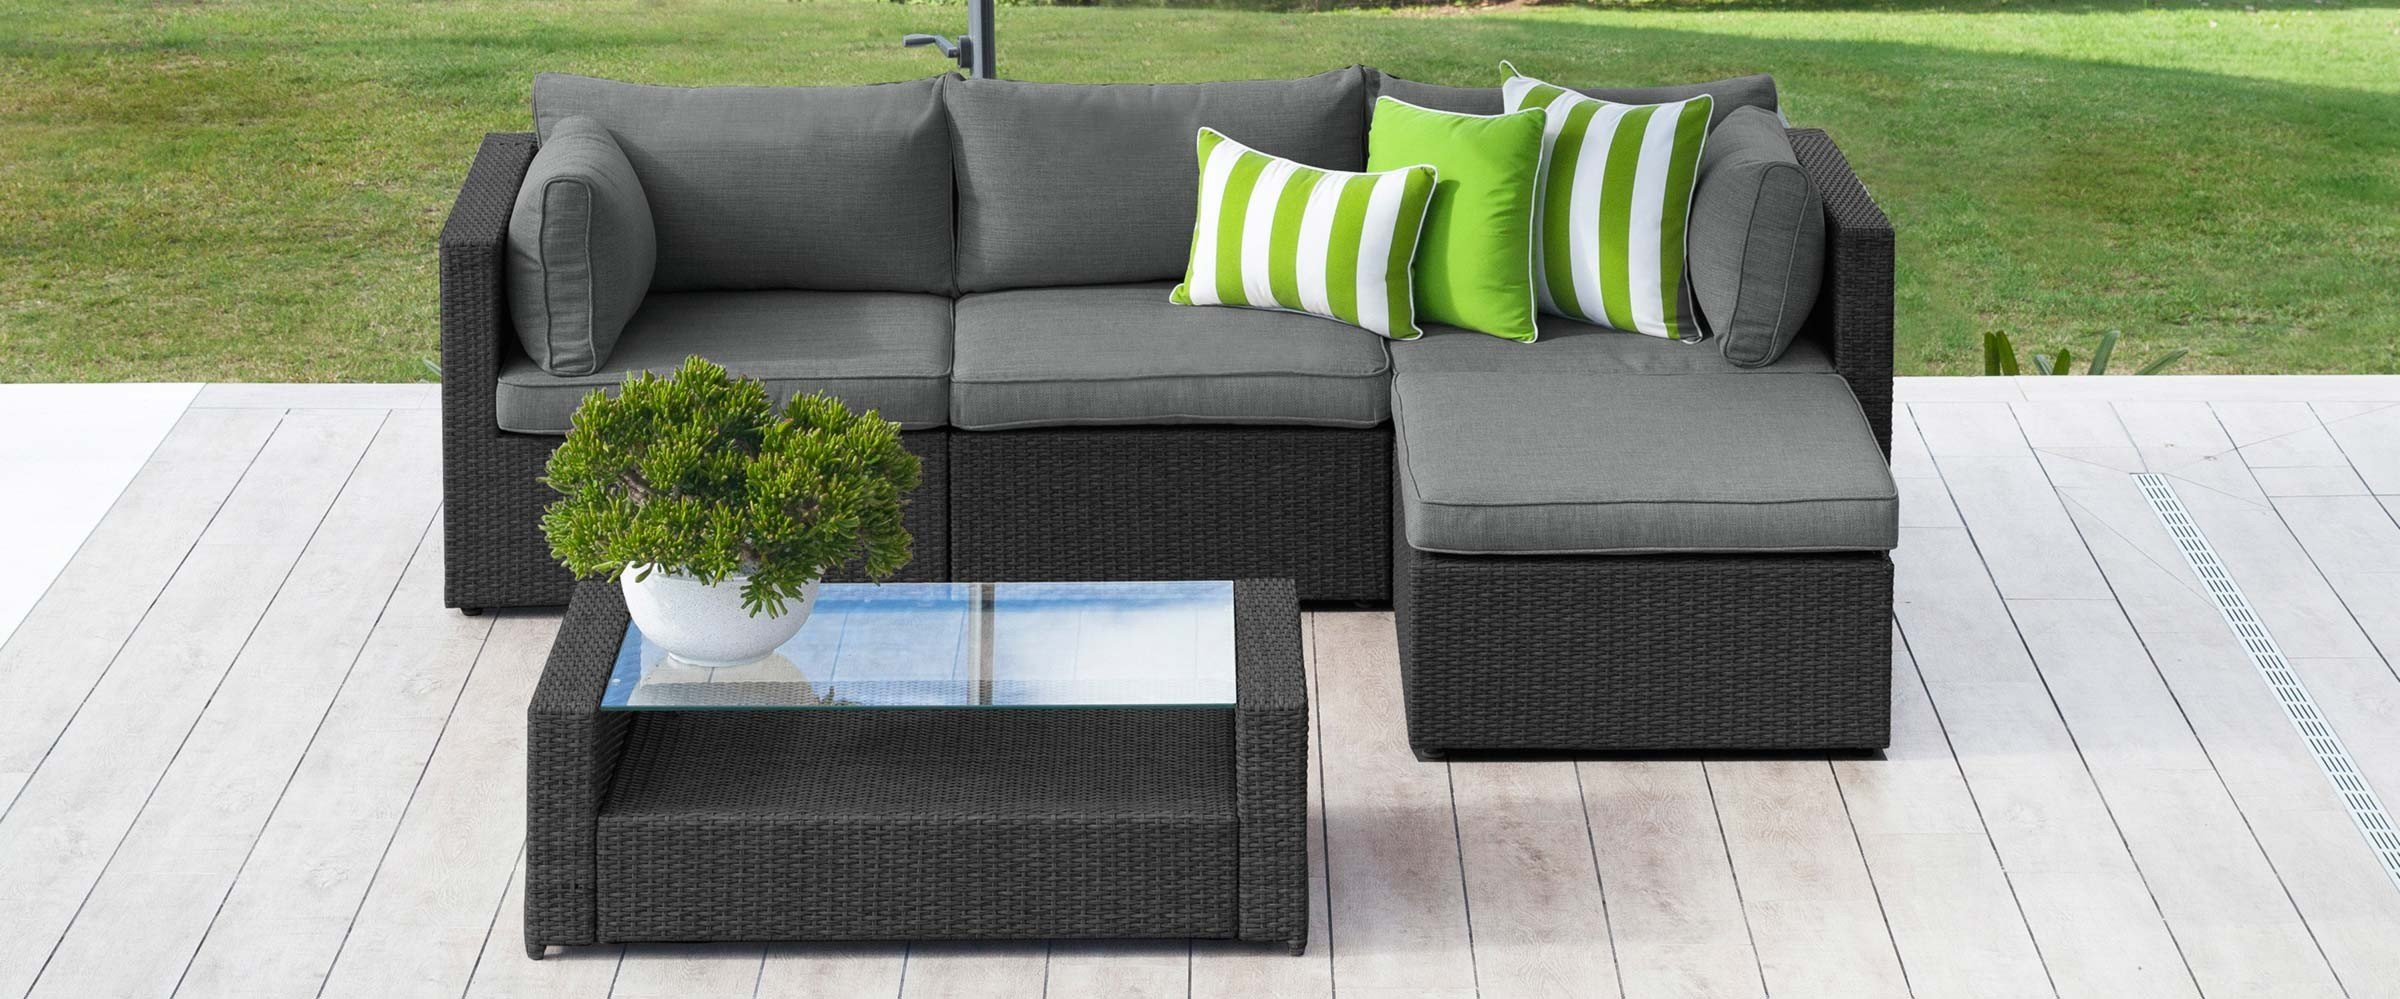 Garden seating sofa set with rectangle table